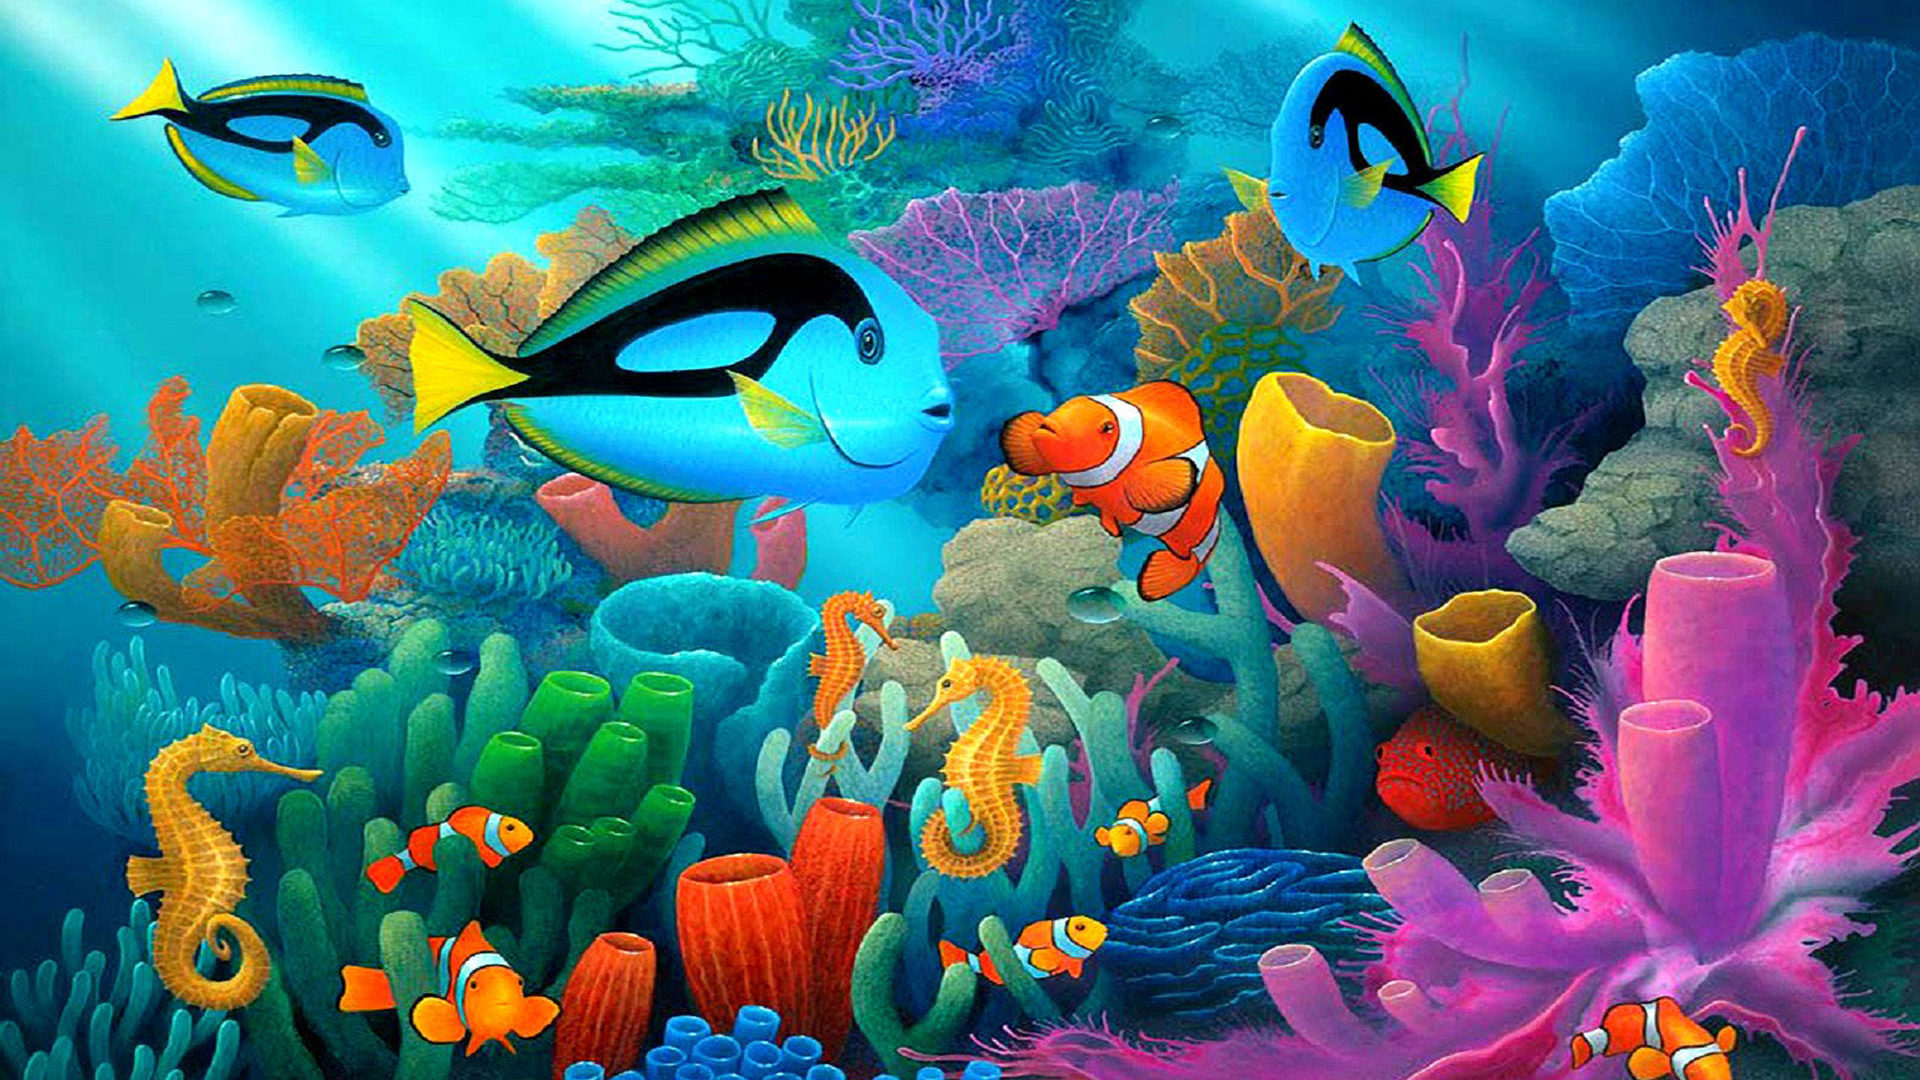 Iphone X Colour Wallpaper Underwater Animal World Coral Reef Coral In Various Colors